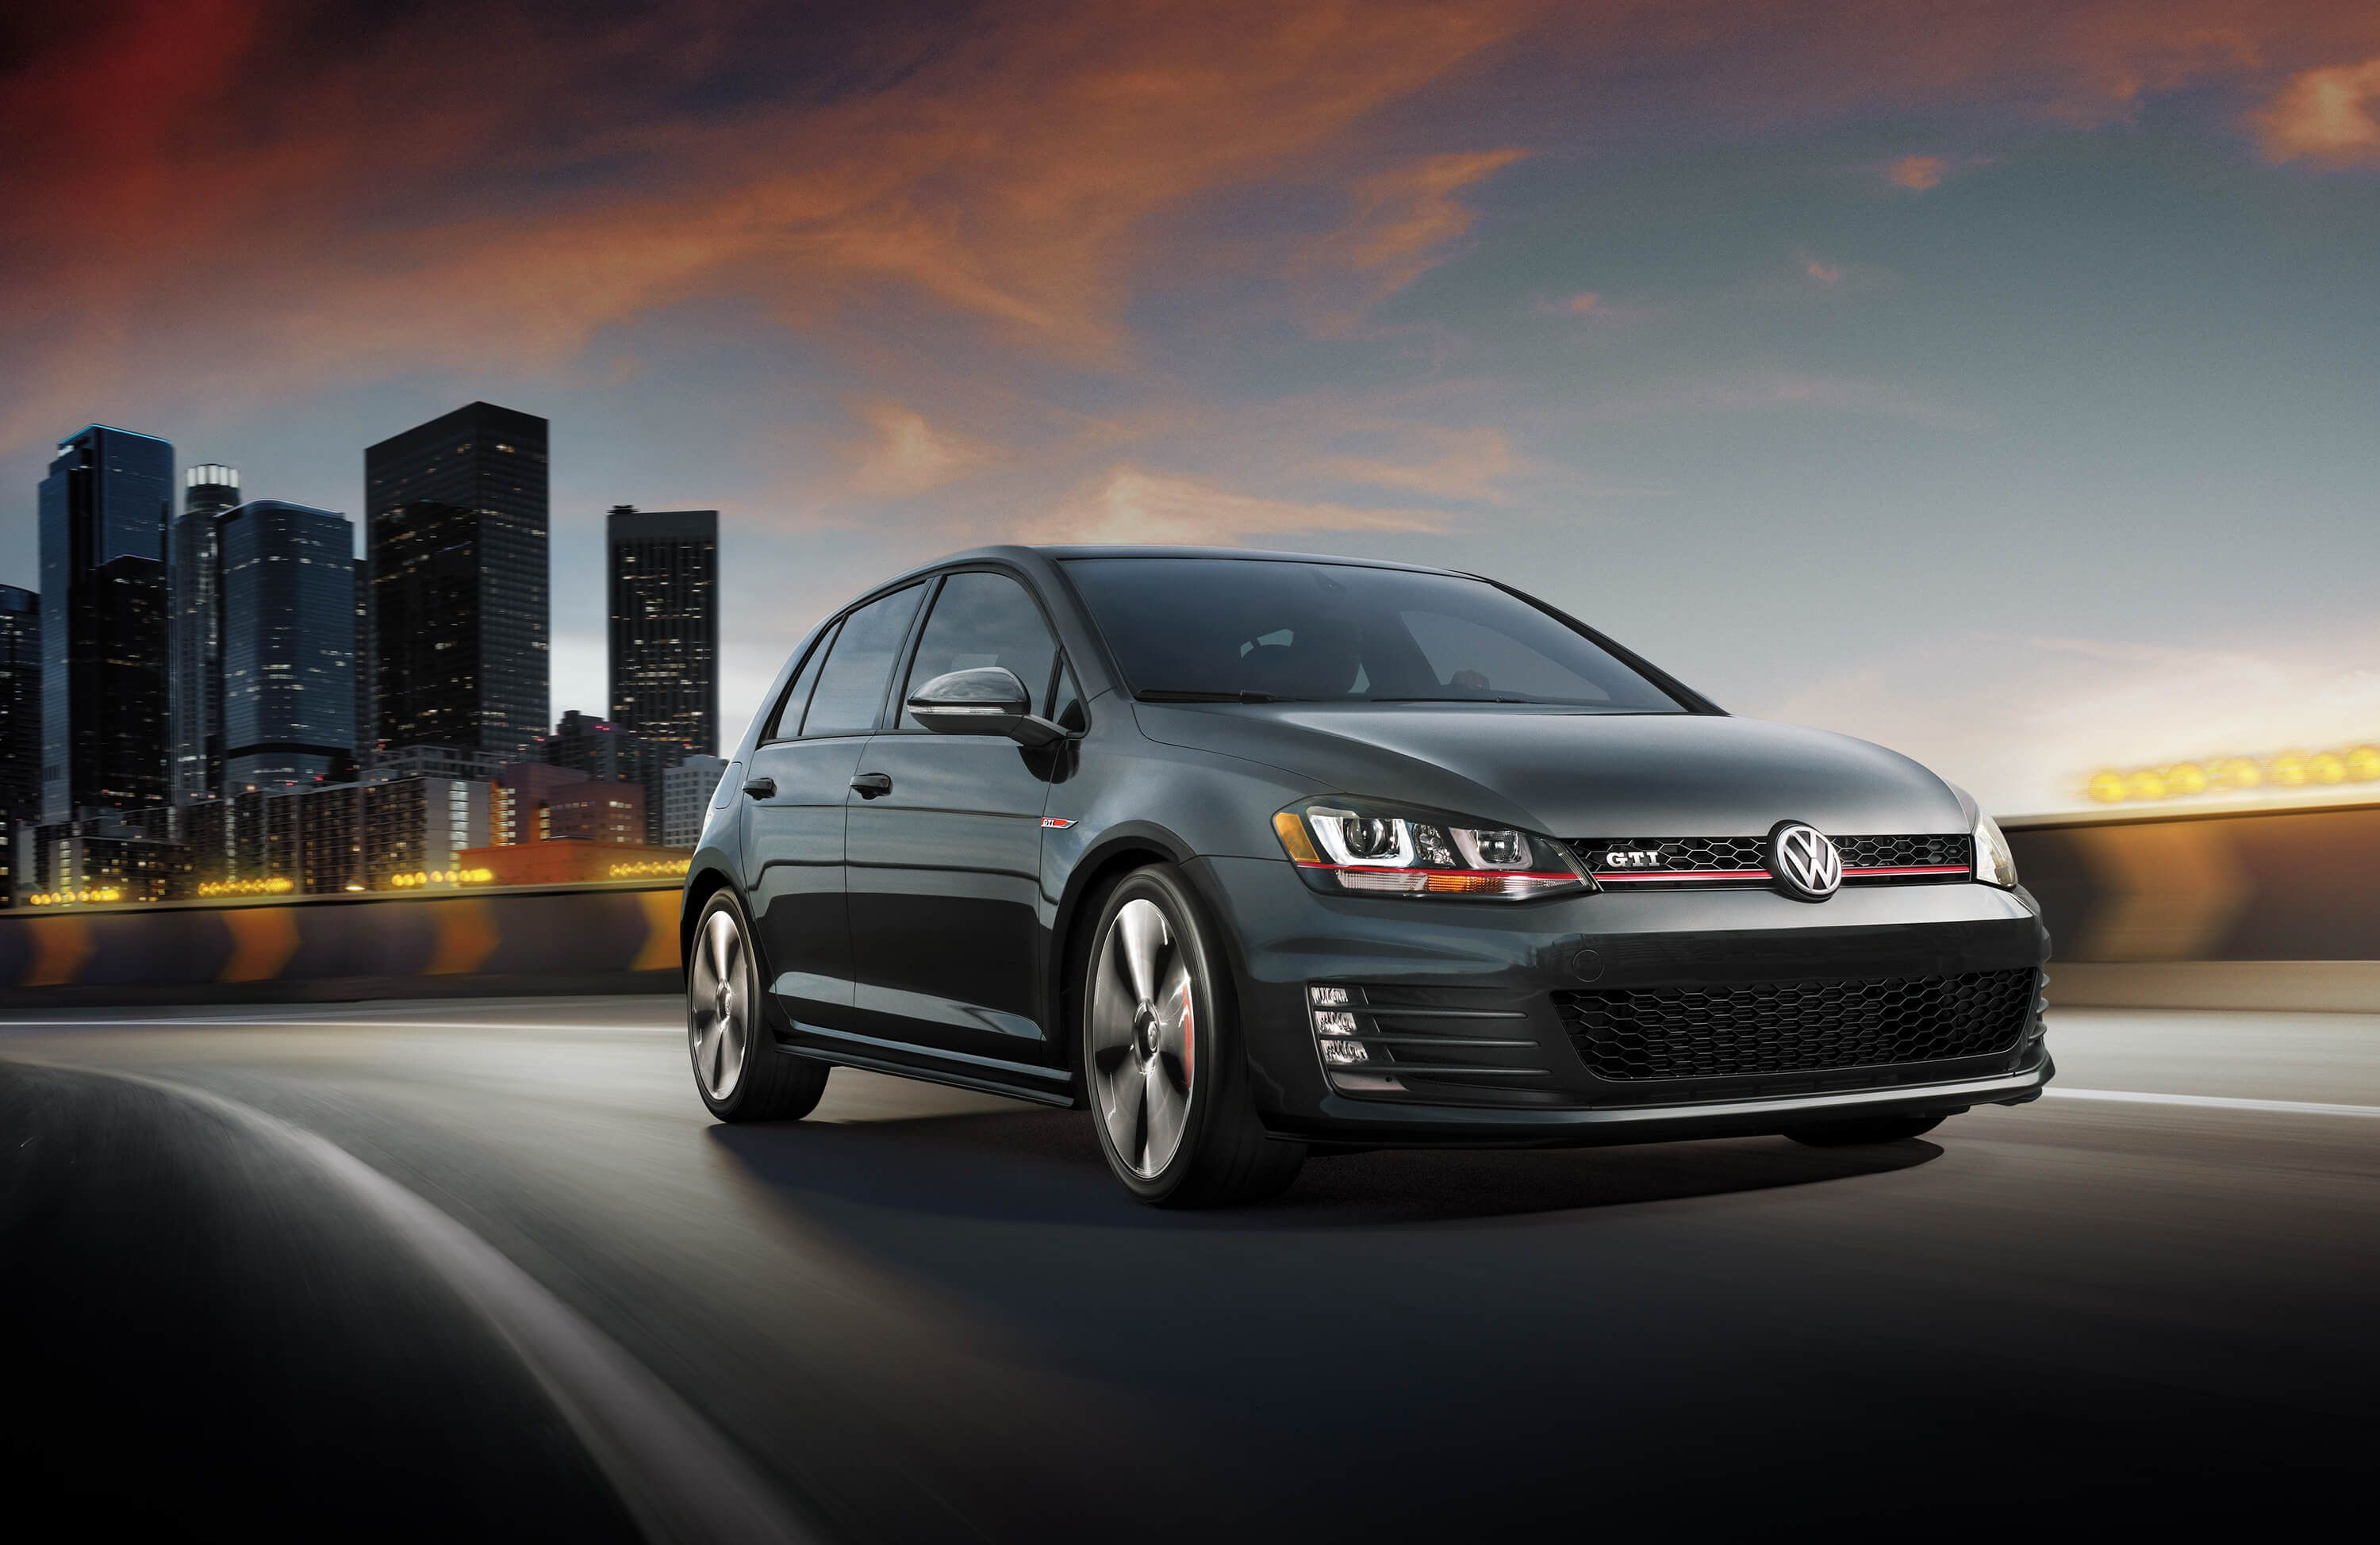 The Golf Gti Comes Loaded With Plenty Of Vroom Volkswagen Golf Volkswagen Golf Gti Gti